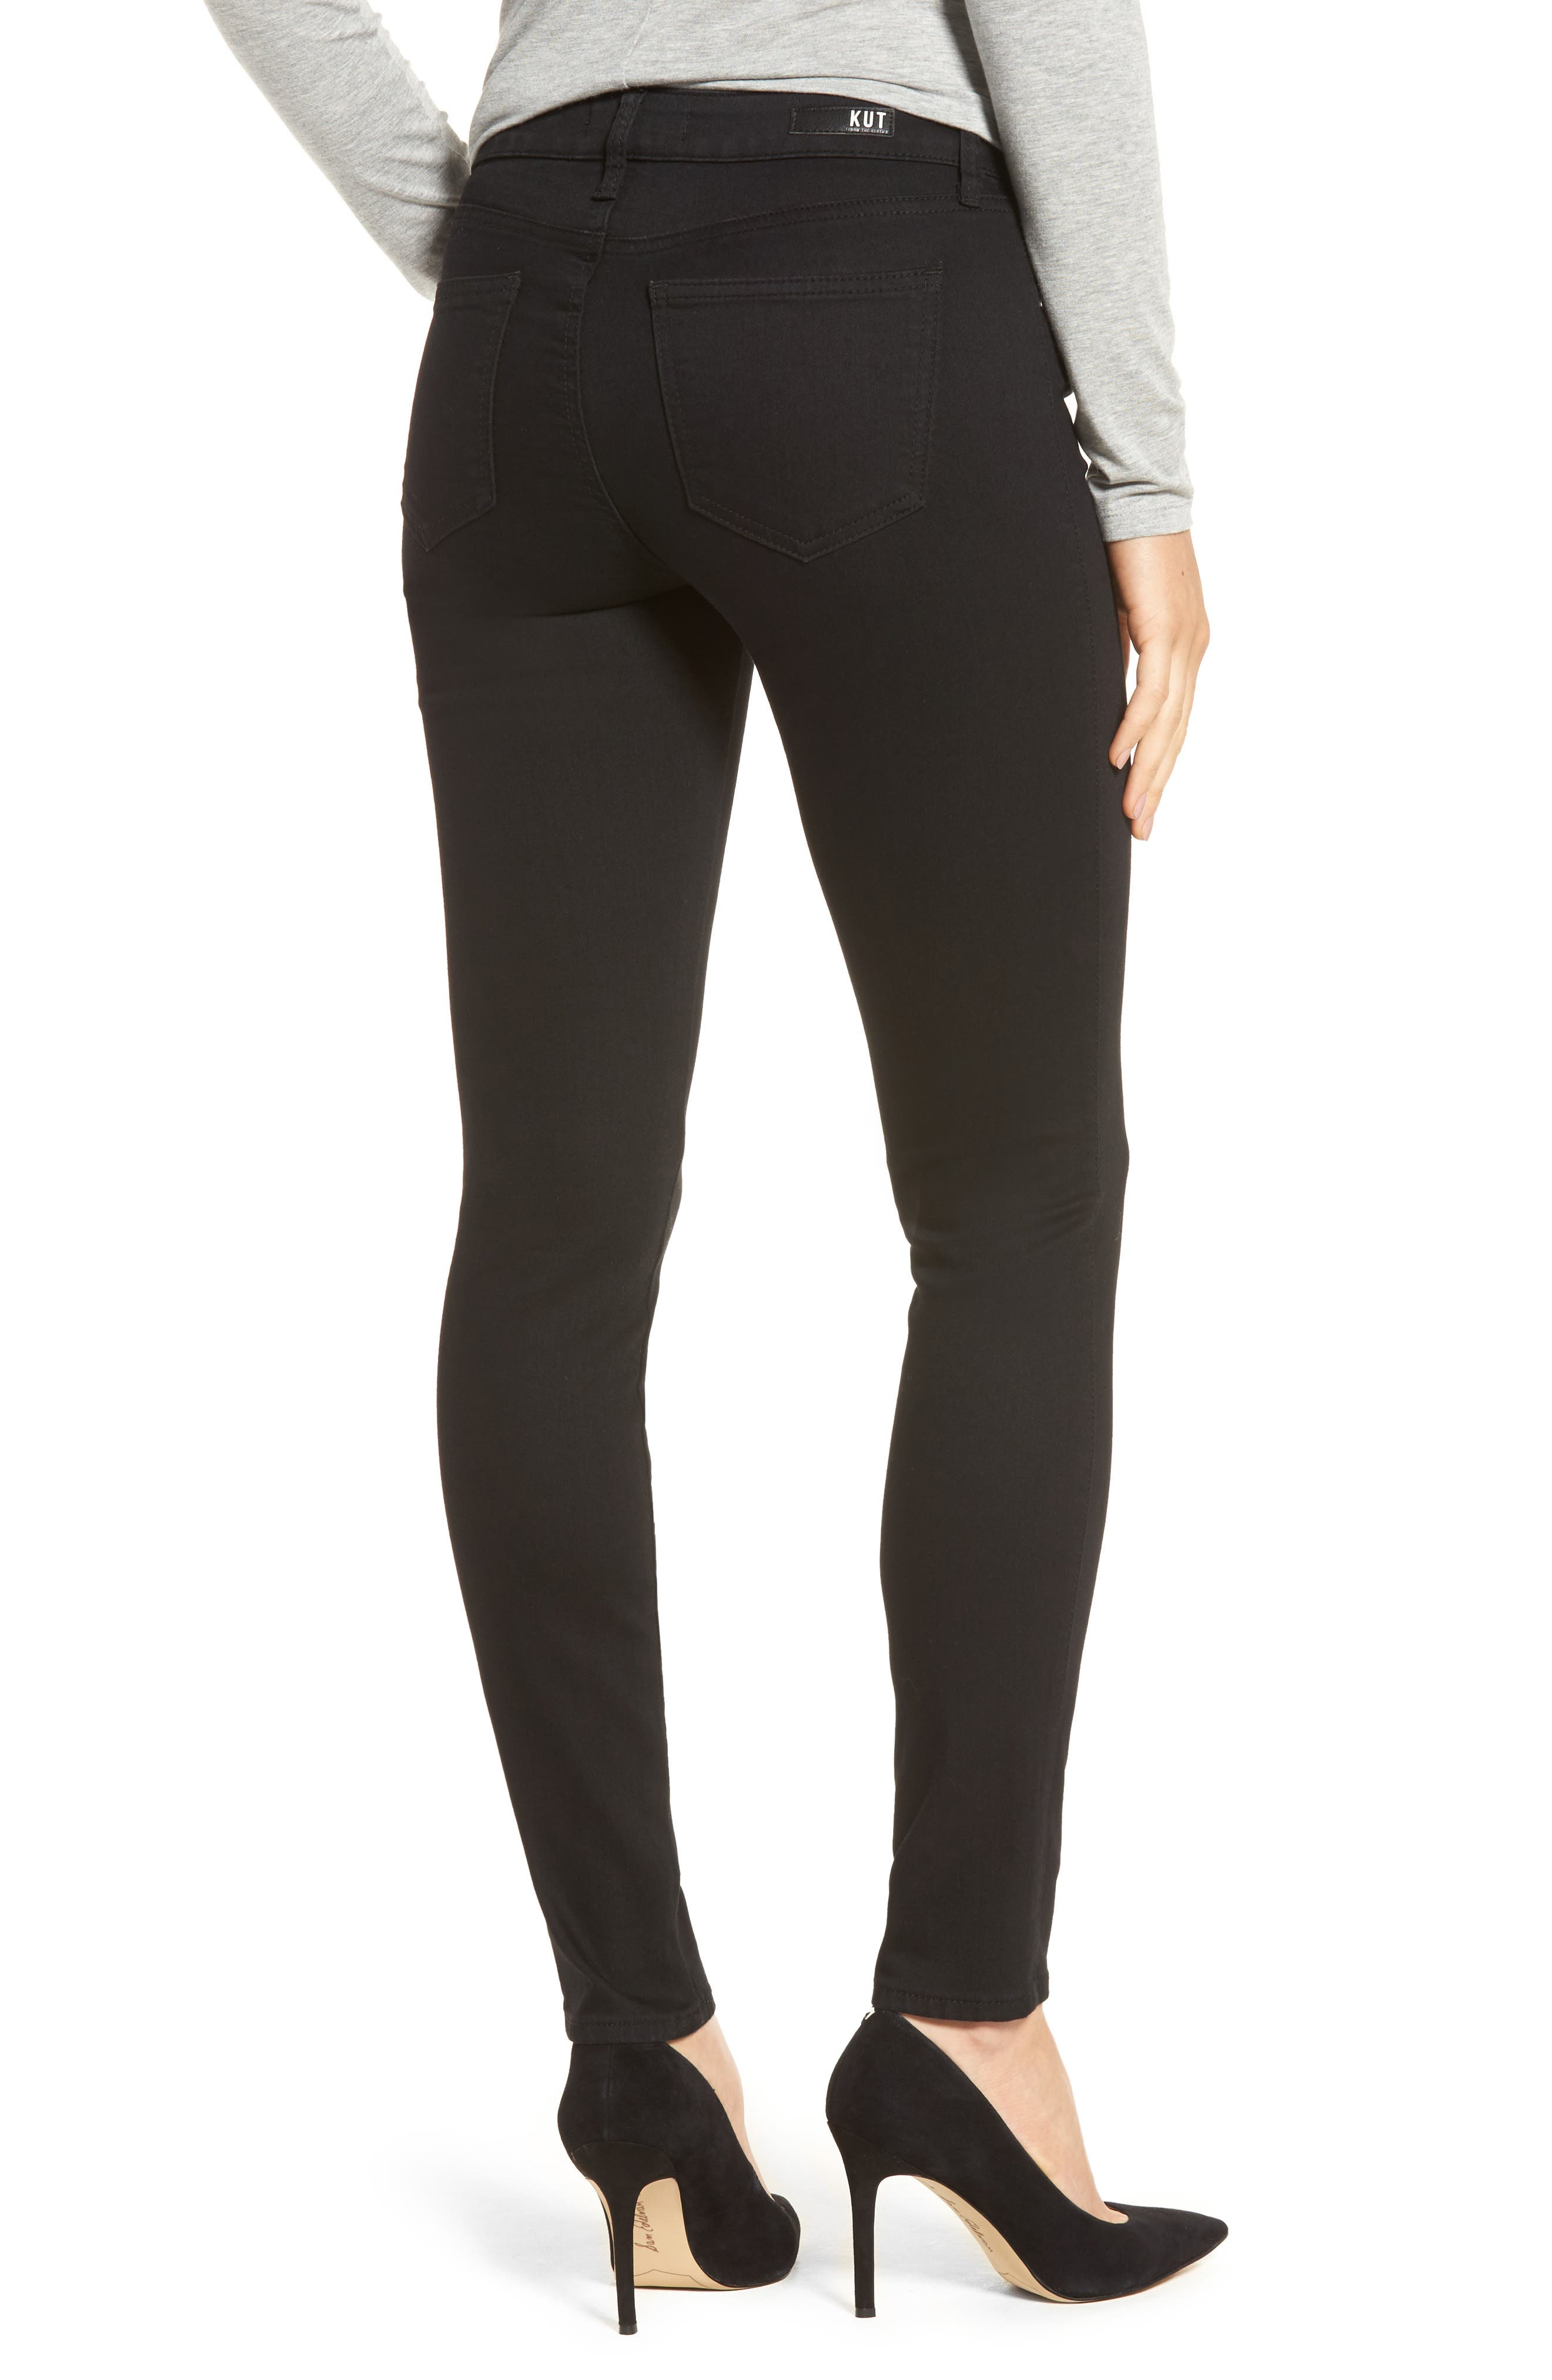 Diana Curvy Fit Skinny Jeans,                             Alternate thumbnail 2, color,                             002